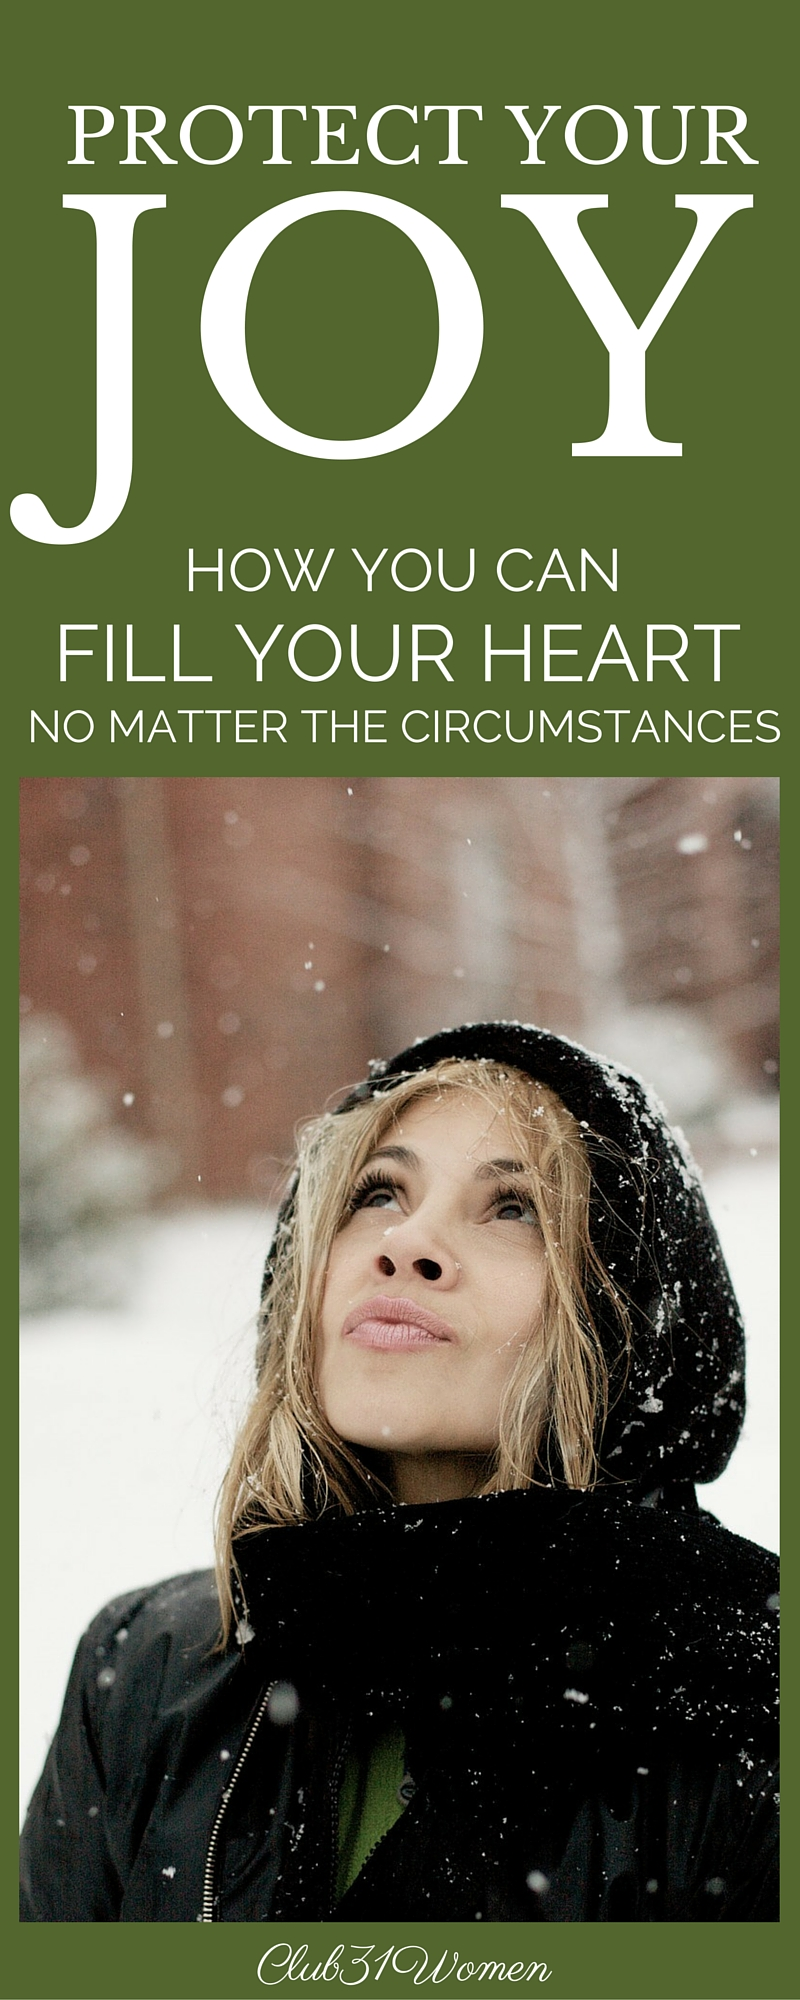 Protect Your Joy: How to Fill Your Heart No Matter the Circumstances